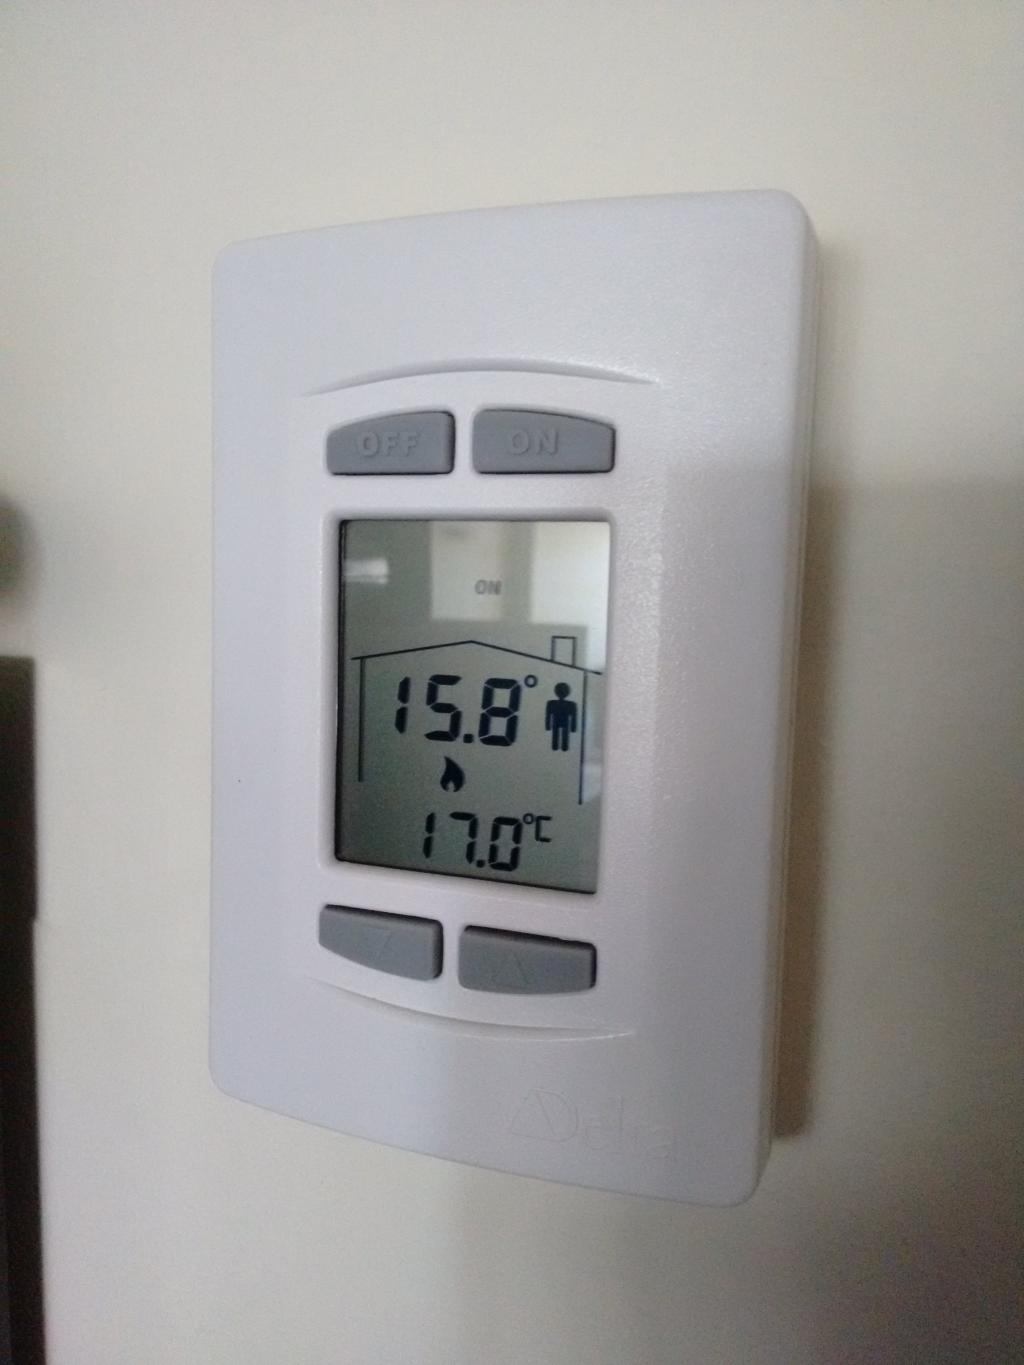 Thermostat in my office showing 15.8°C